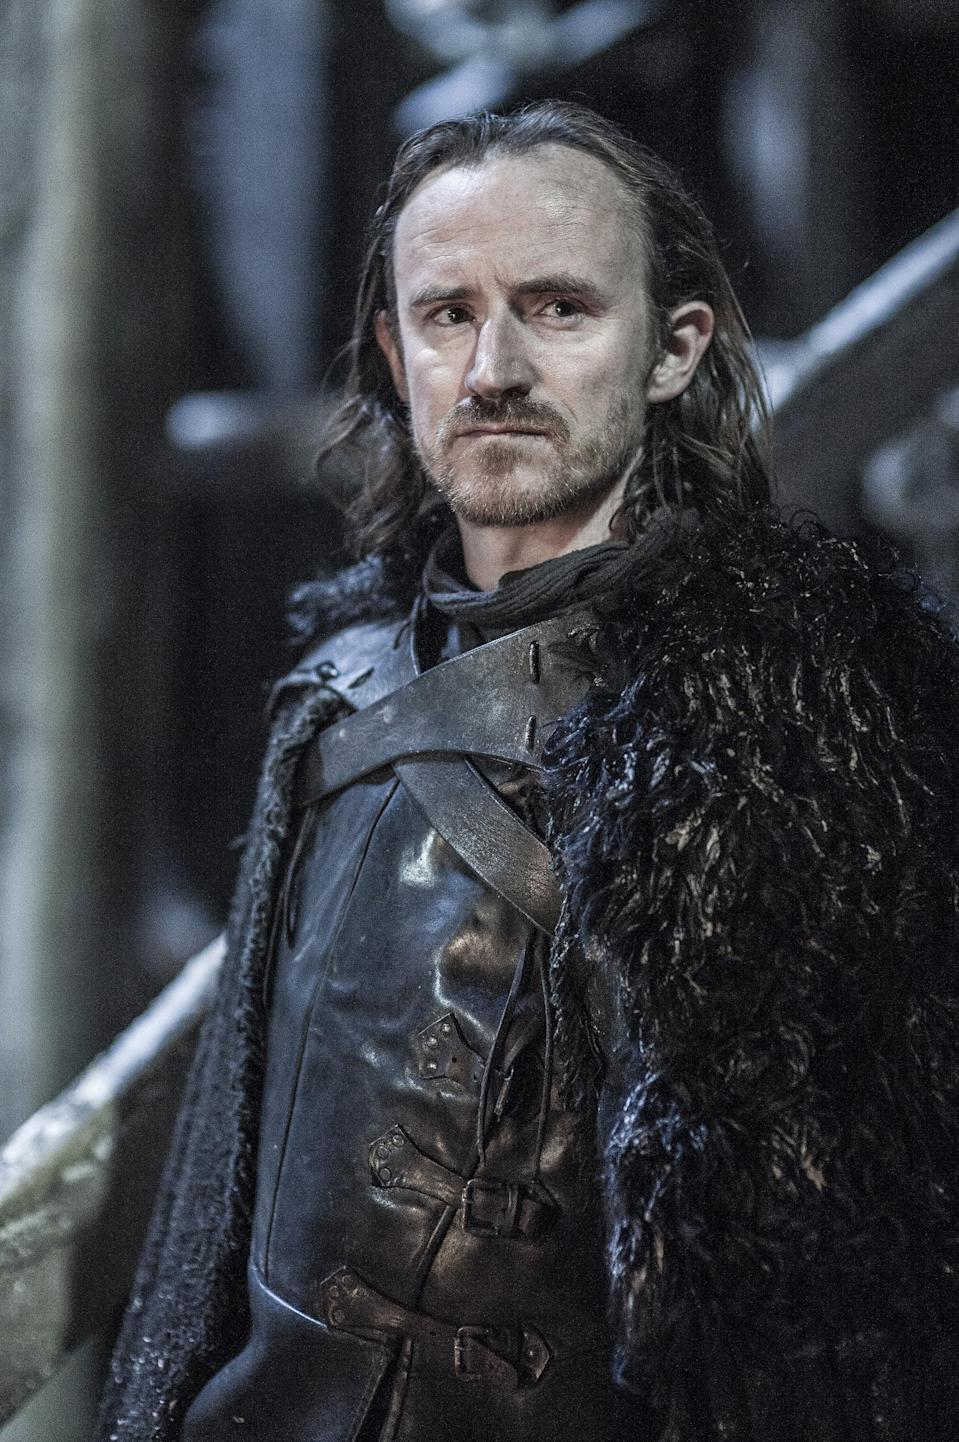 """<p>As hard as it is not to absolutely adore Samwell Tarly, <a href=""""https://www.popsugar.com/entertainment/Mistake-Samwell-Tarly-Makes-Battle-Winterfell-46085132"""" rel=""""nofollow noopener"""" target=""""_blank"""" data-ylk=""""slk:he's the sole reason Edd Tollett meets his untimely demise"""" class=""""link rapid-noclick-resp"""">he's the sole reason Edd Tollett meets his untimely demise</a> during the Battle of Winterfell. As a fellow member of the Night's Watch, he initially questions Samwell's presence on the battlefield, and for good reason. After saving Sam from a wight and encouraging him to get up and fight, Edd is stabbed in the back by another member of the undead army right before Sam's eyes. If not for Samwell, Edd would probably still be alive. As an experienced fighter, there's no way he would go down that easily in any other circumstance, which is why his exit left us with a bad taste in our mouths.</p>"""